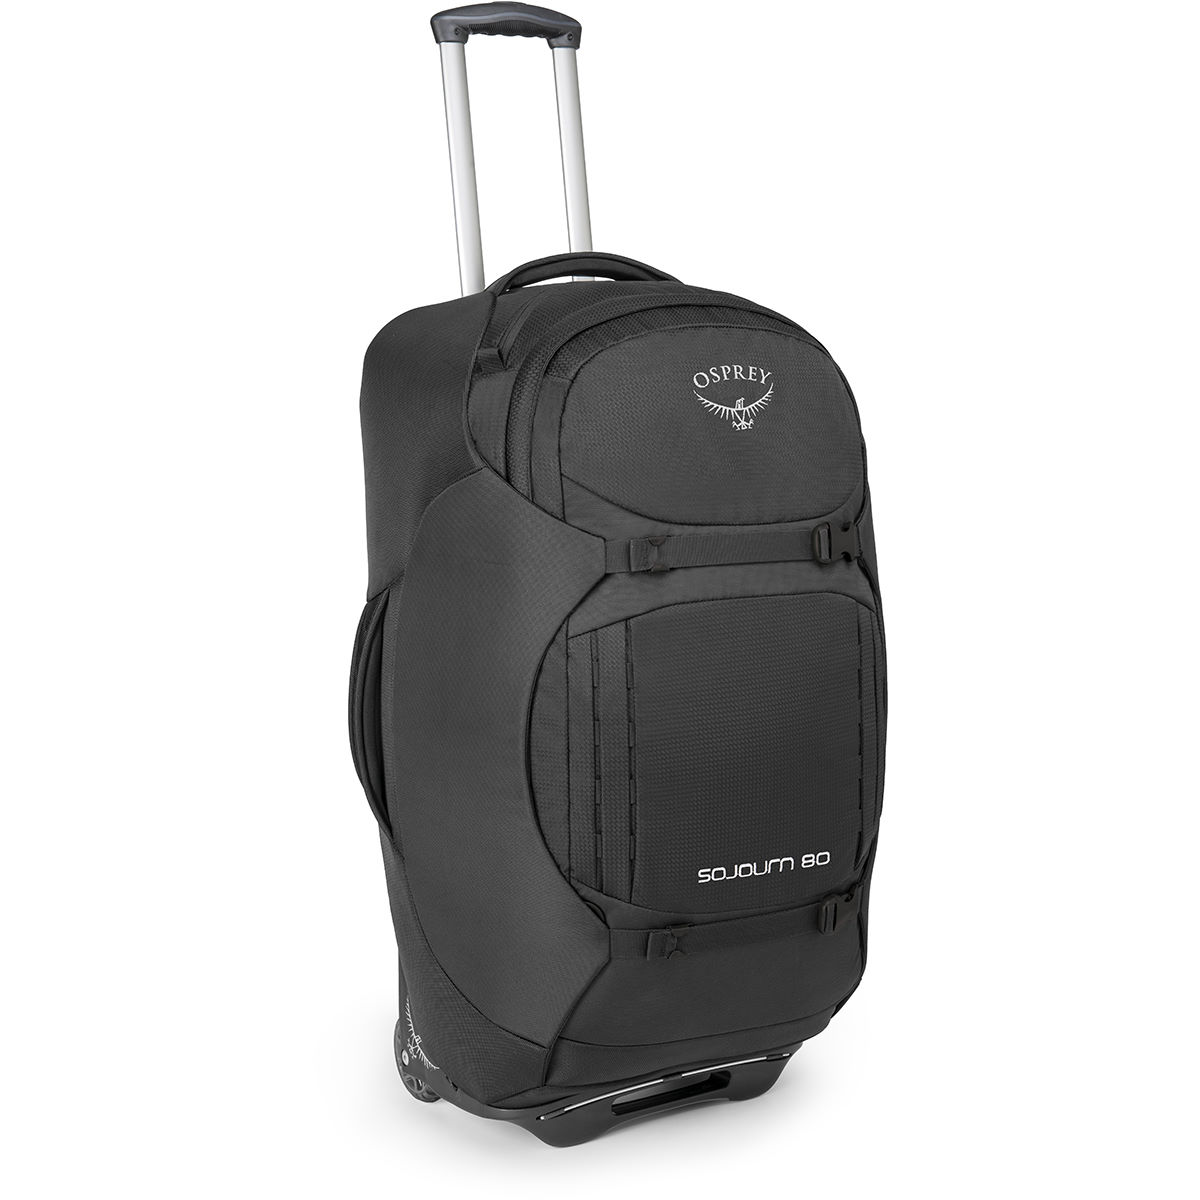 Osprey Osprey Sojourn 80 Travel Bag   Travel Bags